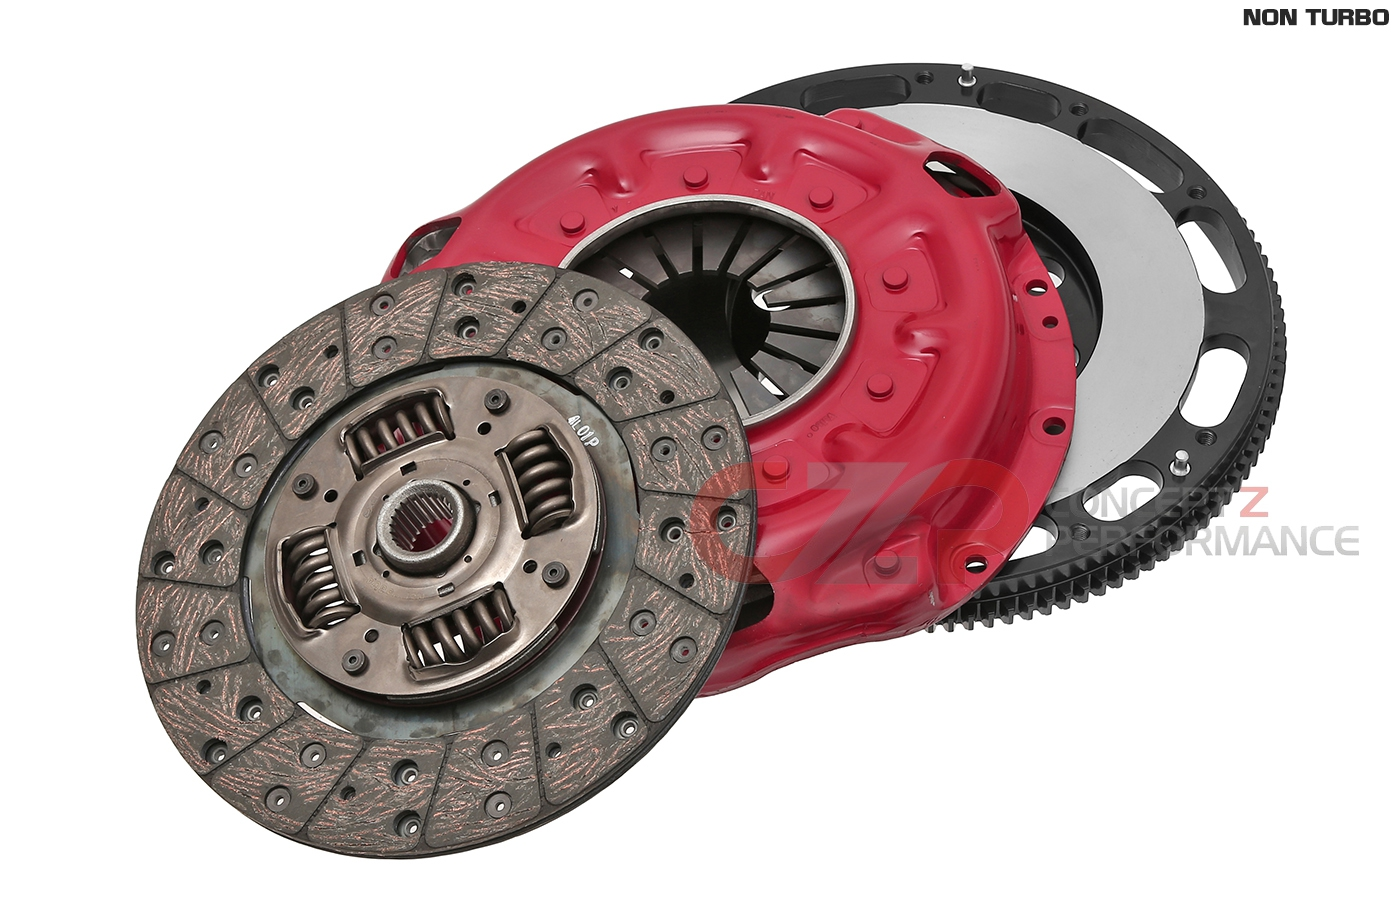 CZP Clutch & Chromoly Flywheel Combo Package, Non-Turbo NA - Nissan 300ZX Z32